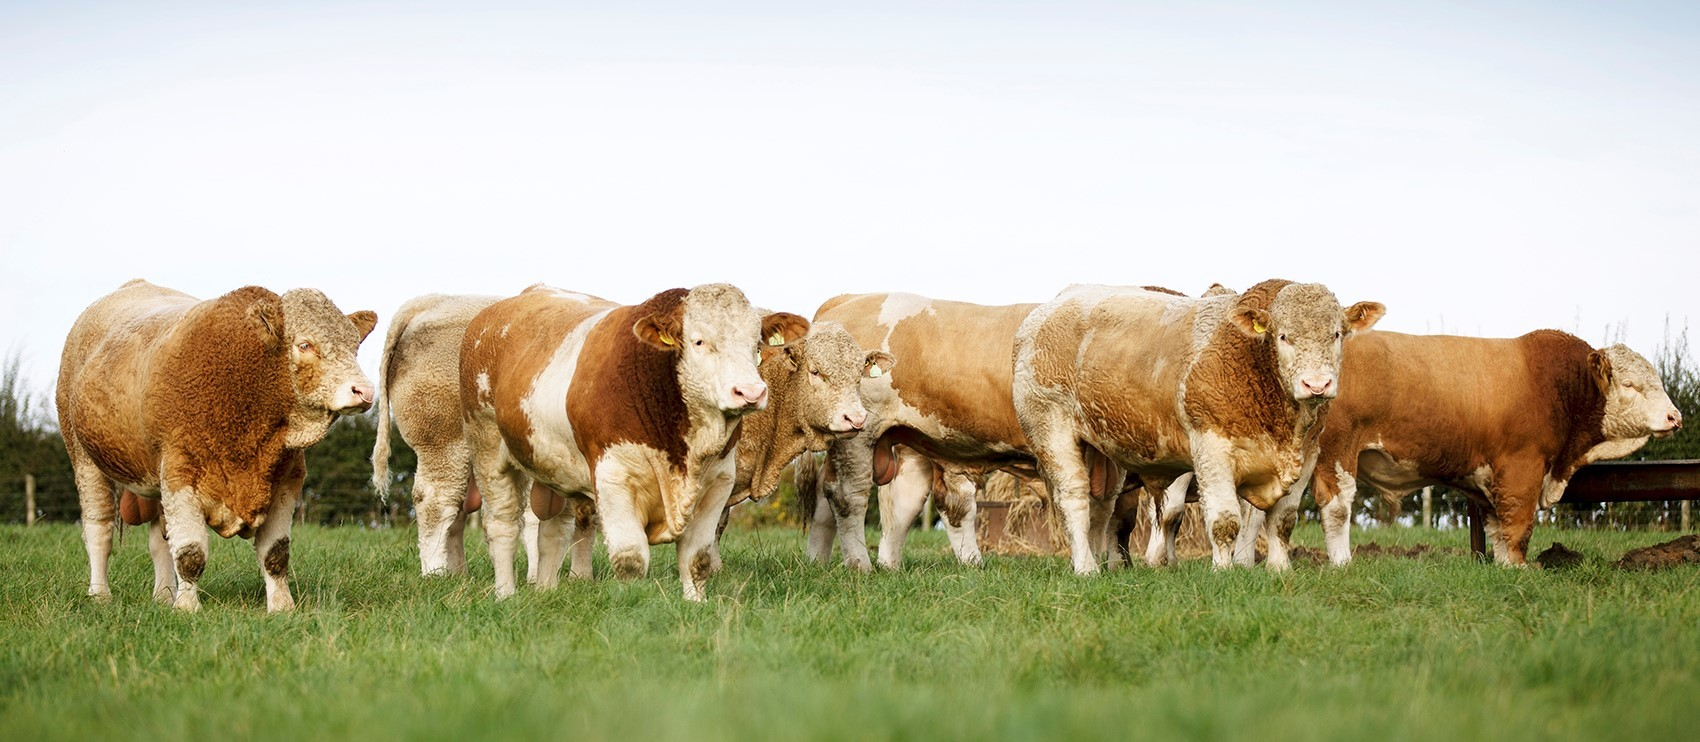 Home-bred Simmental bulls used on the Luing and the Sim-Luing herds